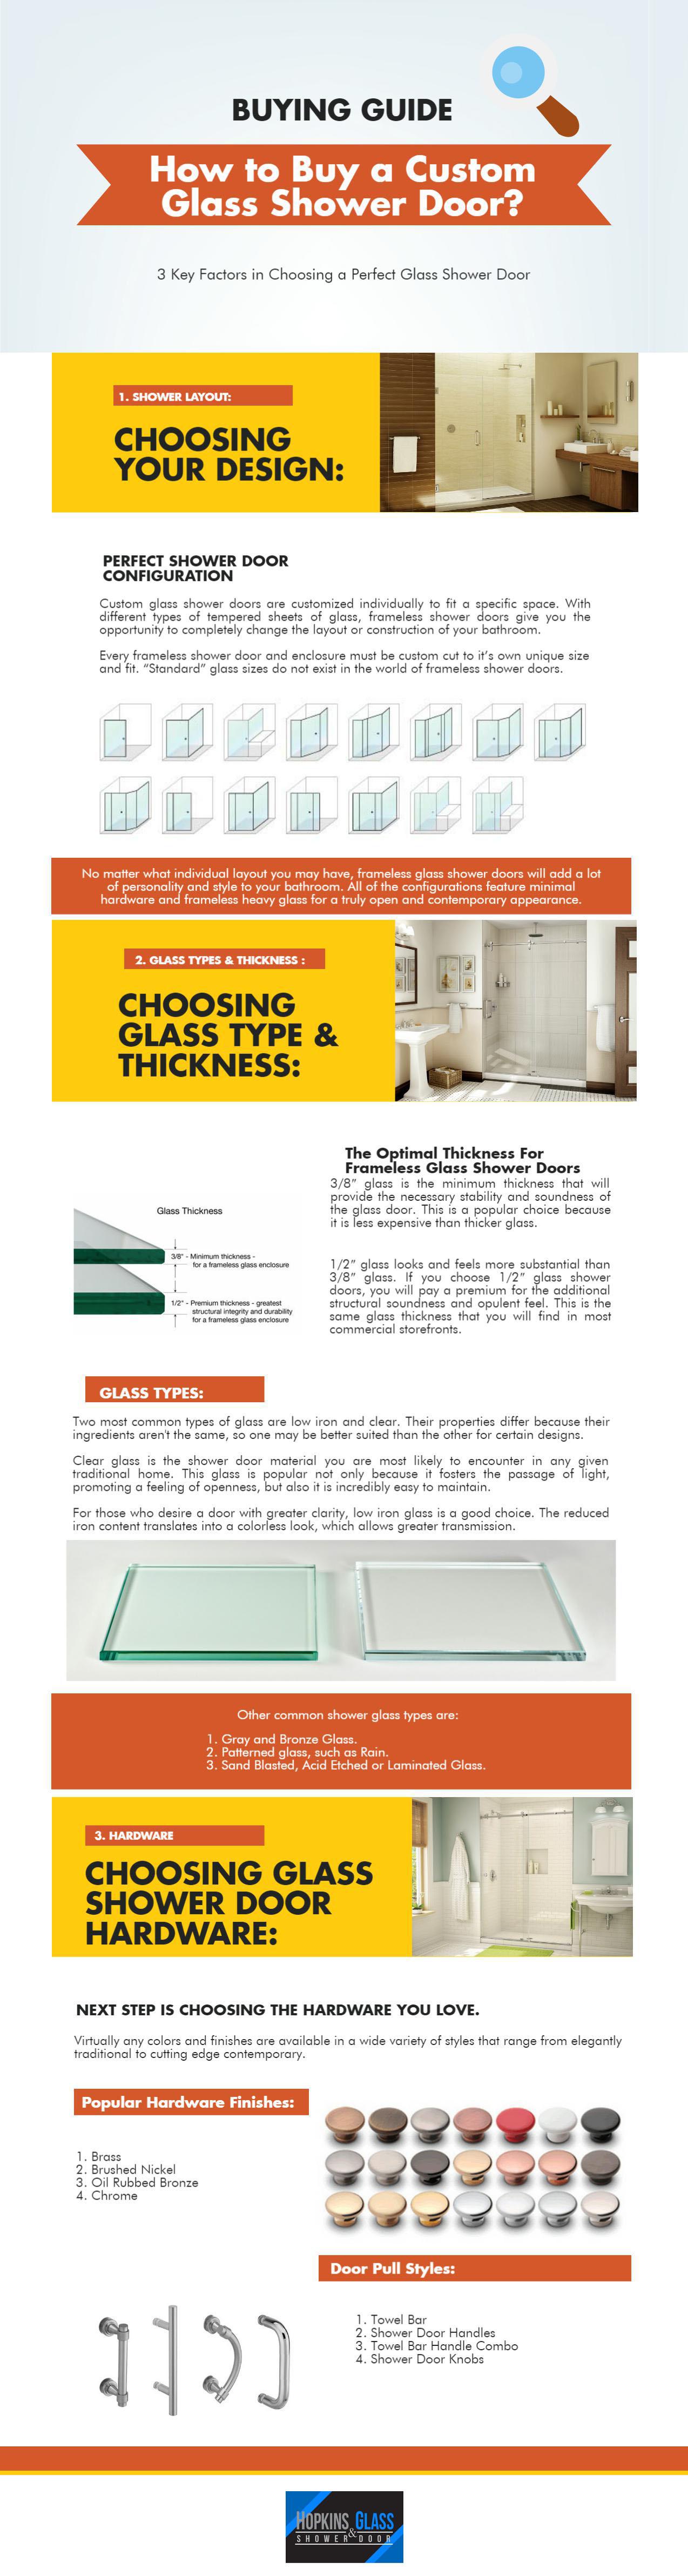 How to Buy Custom Frameless Glass Shower Doors – Buying Guide